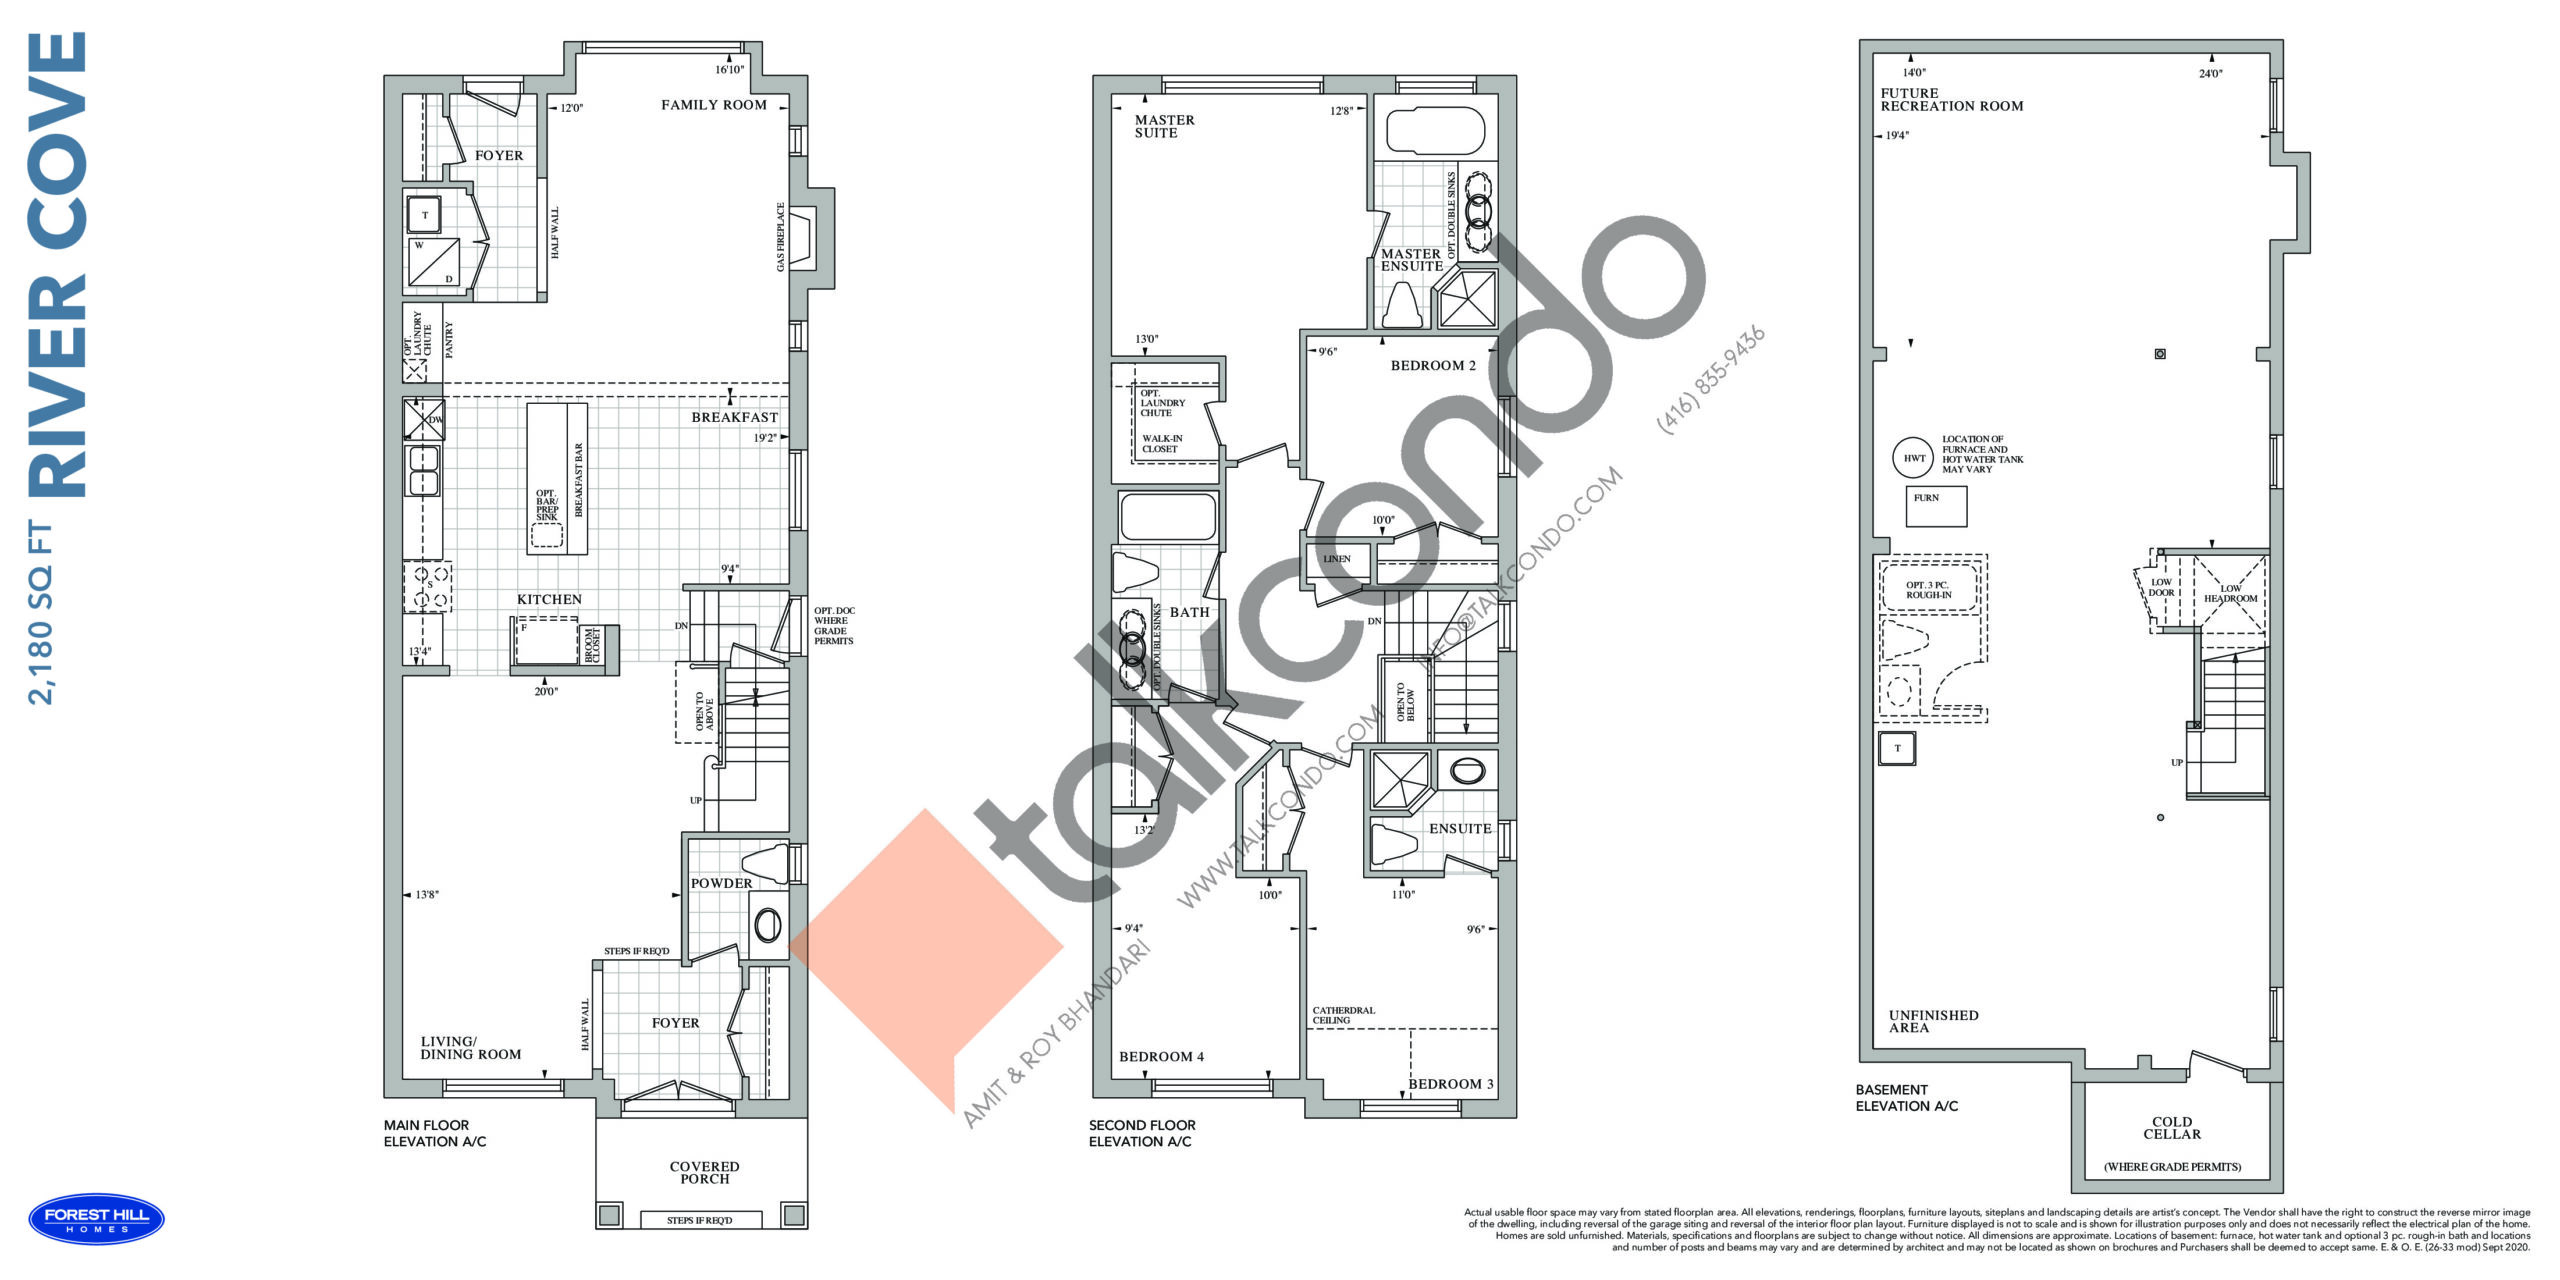 River Cove Floor Plan at Cornell Rouge Phase 7 Towns - 2180 sq.ft